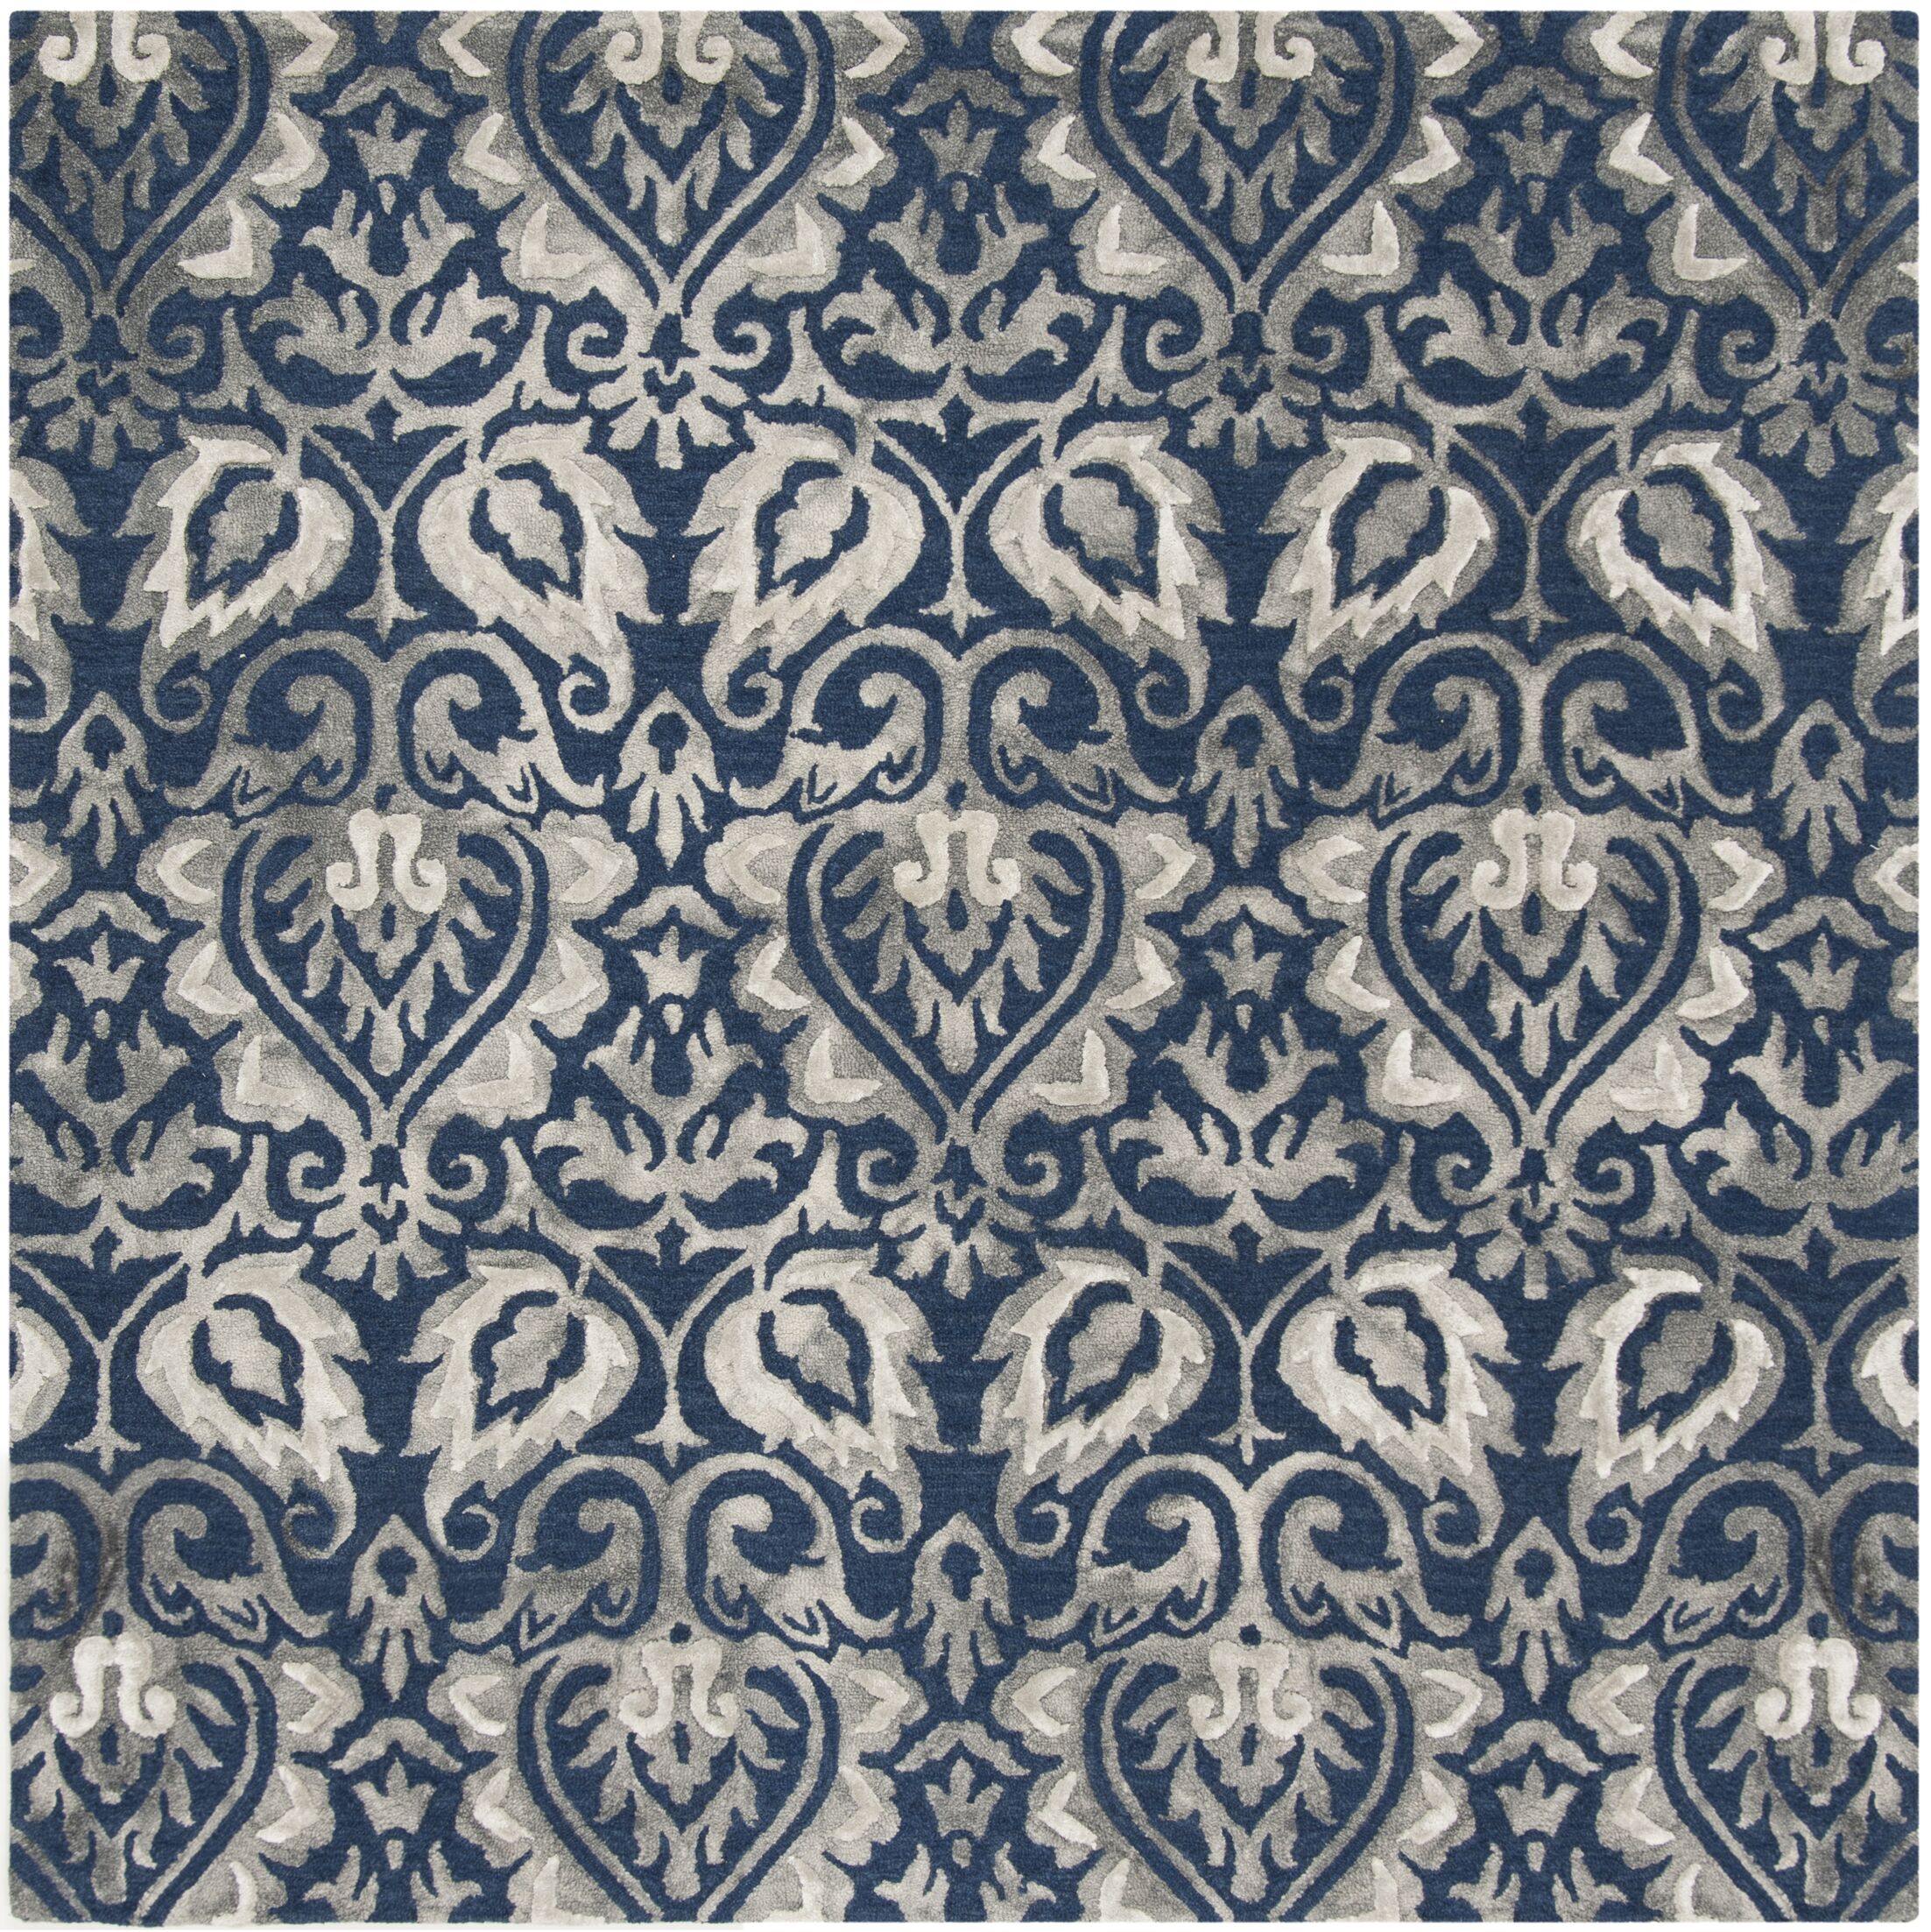 Brennan Hand-Tufted Wool Navy Area Rug Rug Size: Square 7'